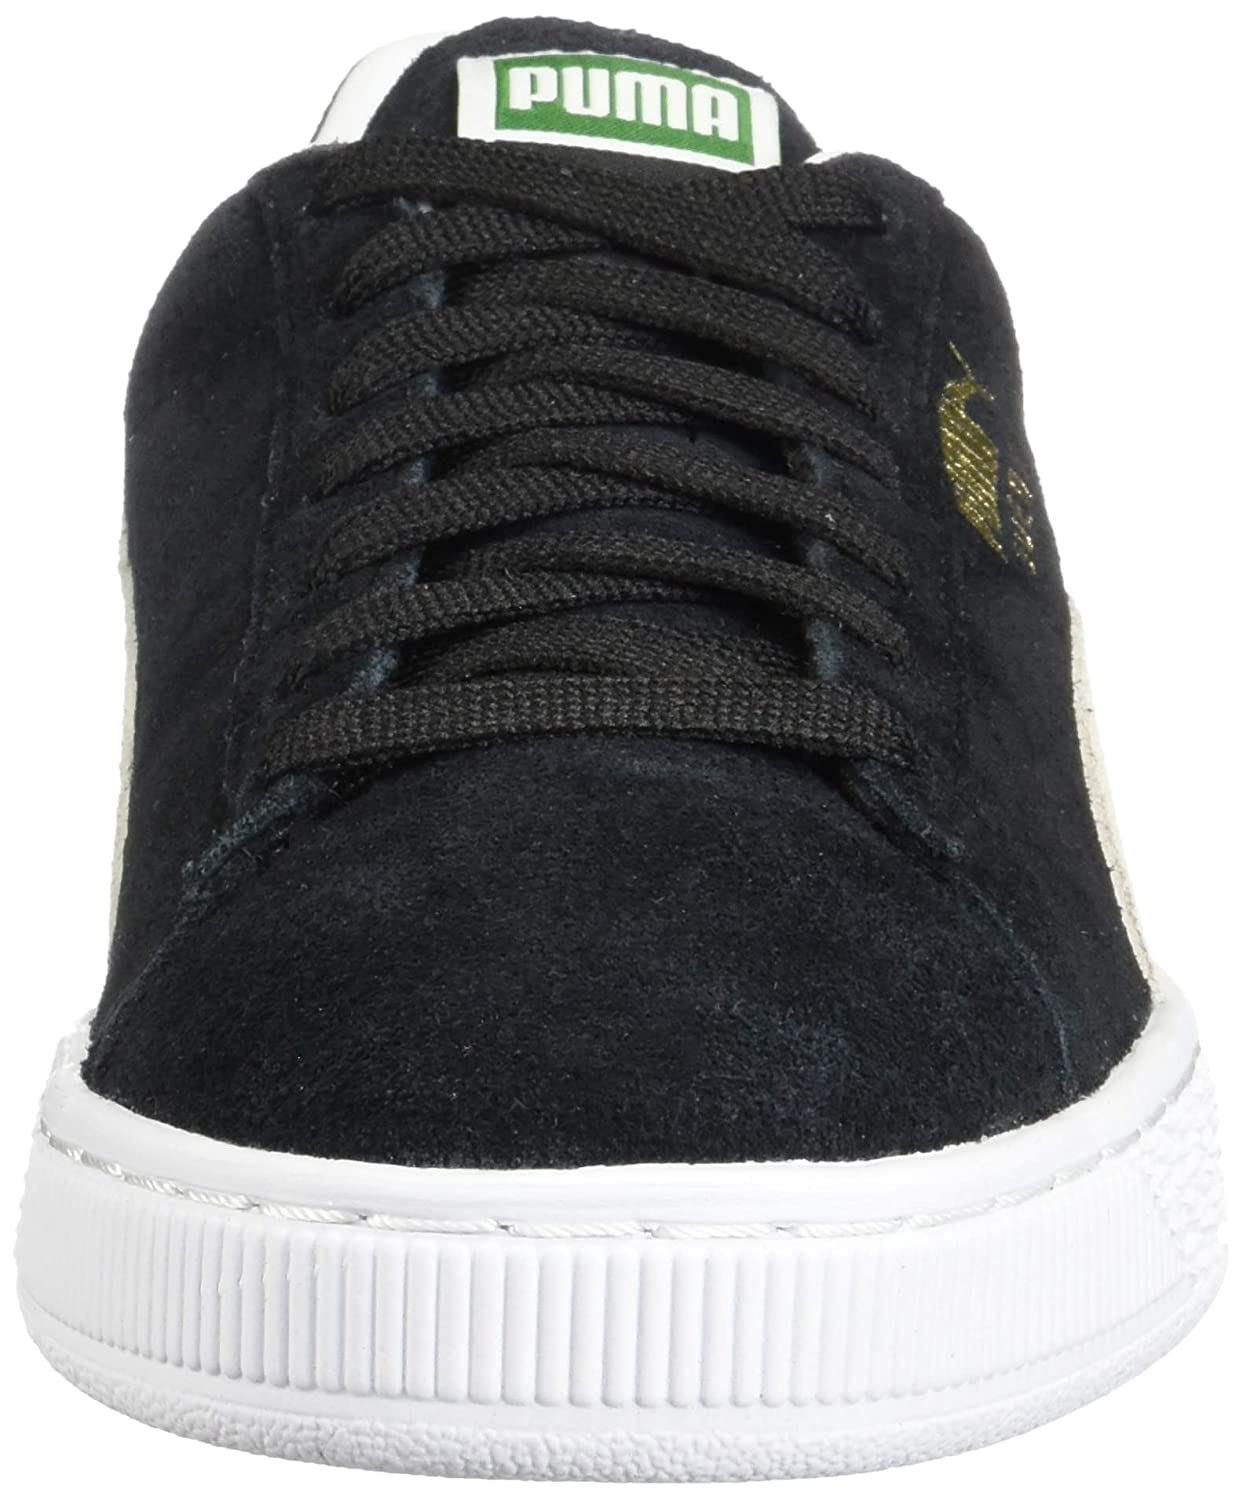 Amazon.com  PUMA Adult Suede Classic Shoe  Puma  Shoes 44ac6b6f3